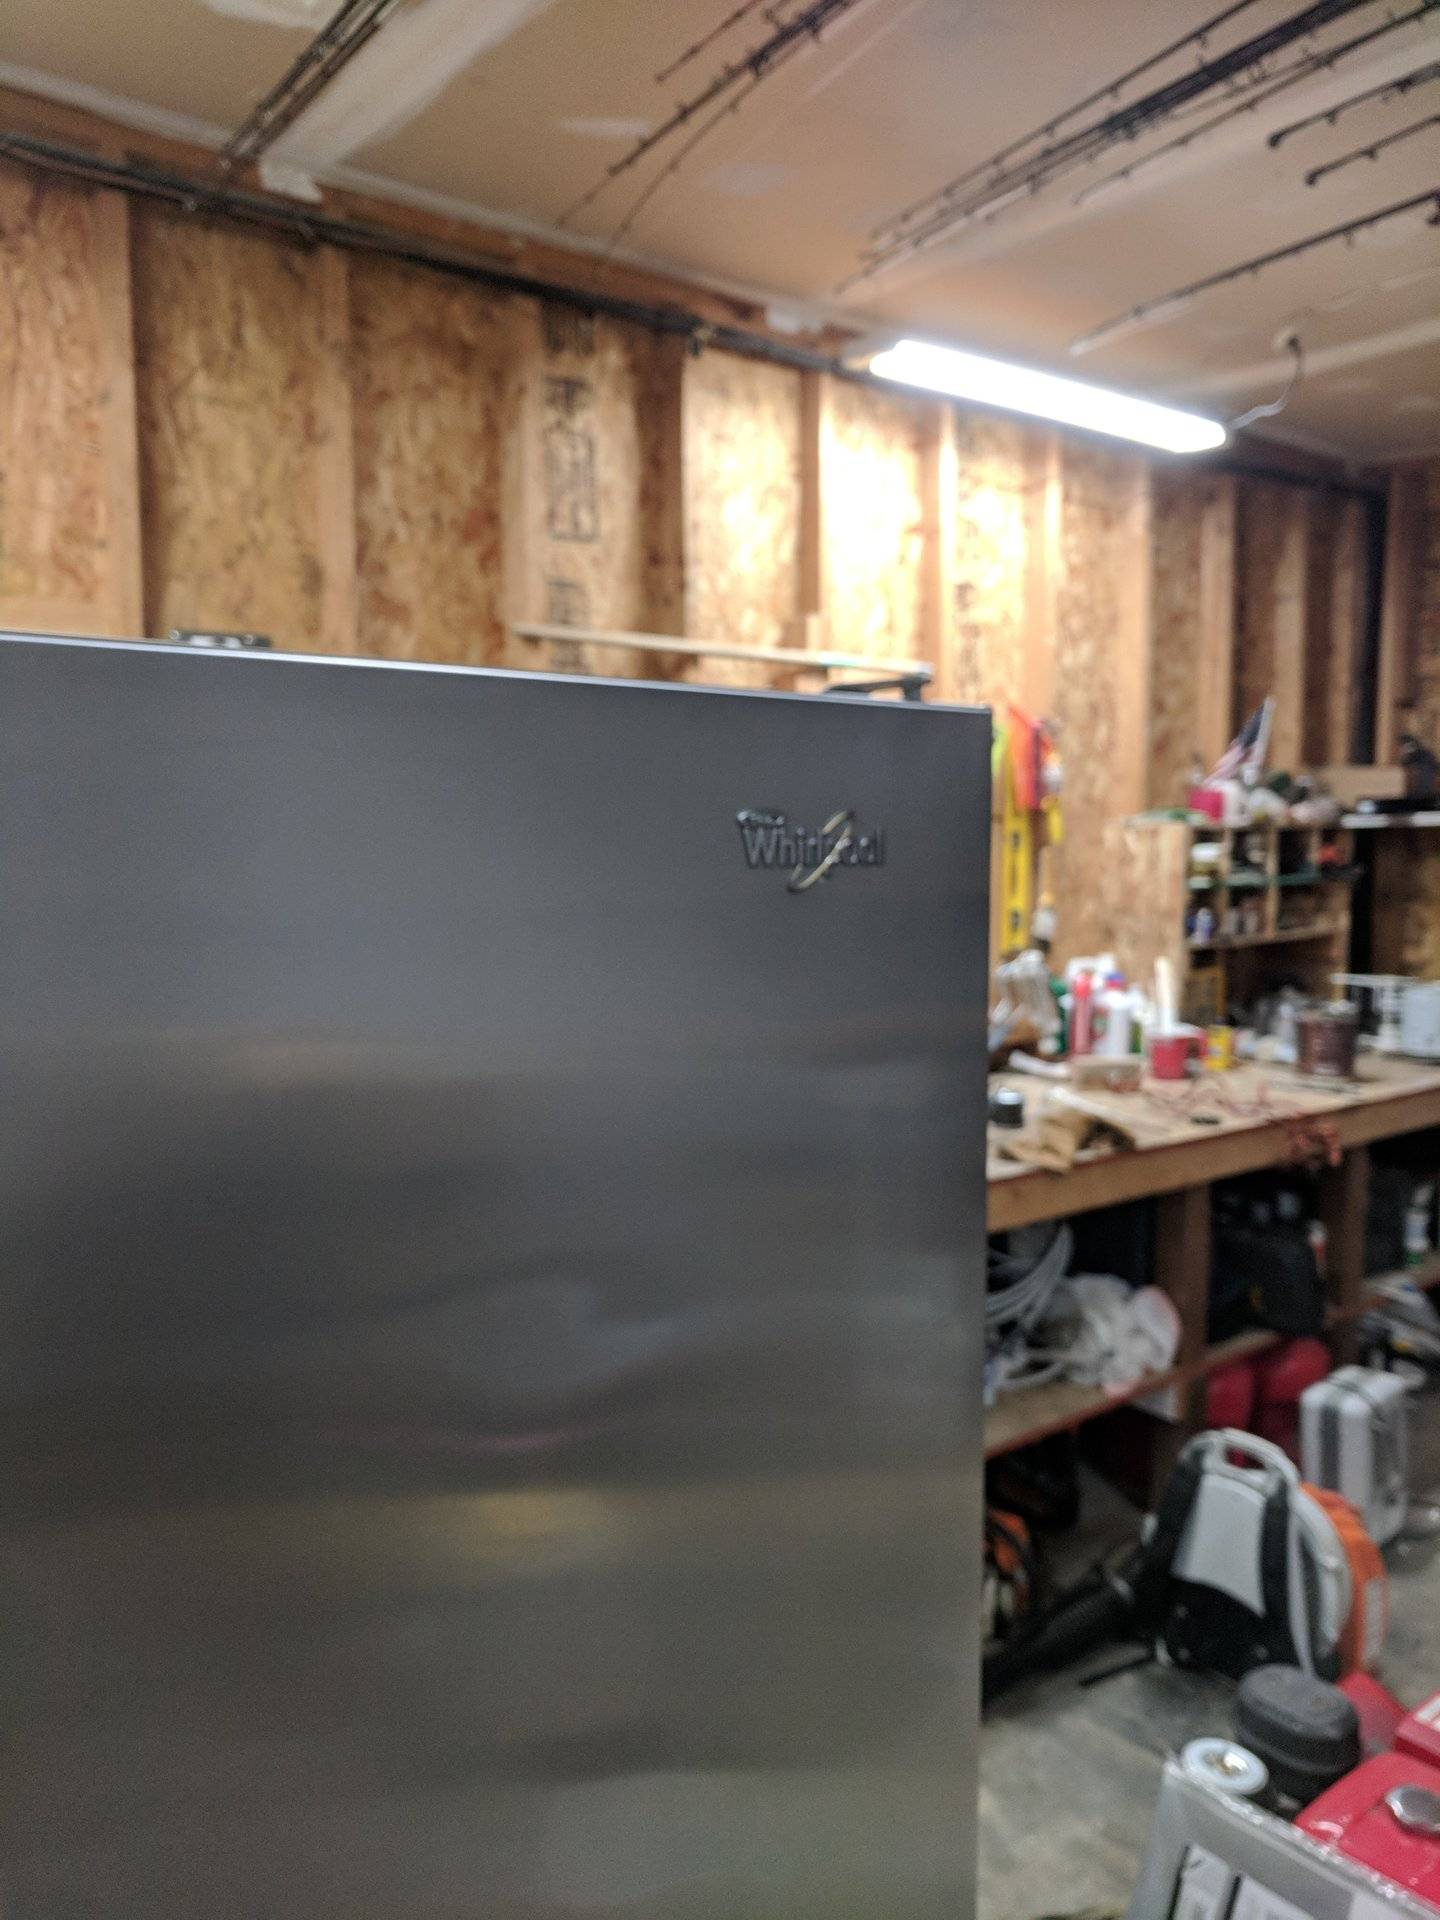 Whirlpool Side By Side Stainless Refrigerator Bloodydecks